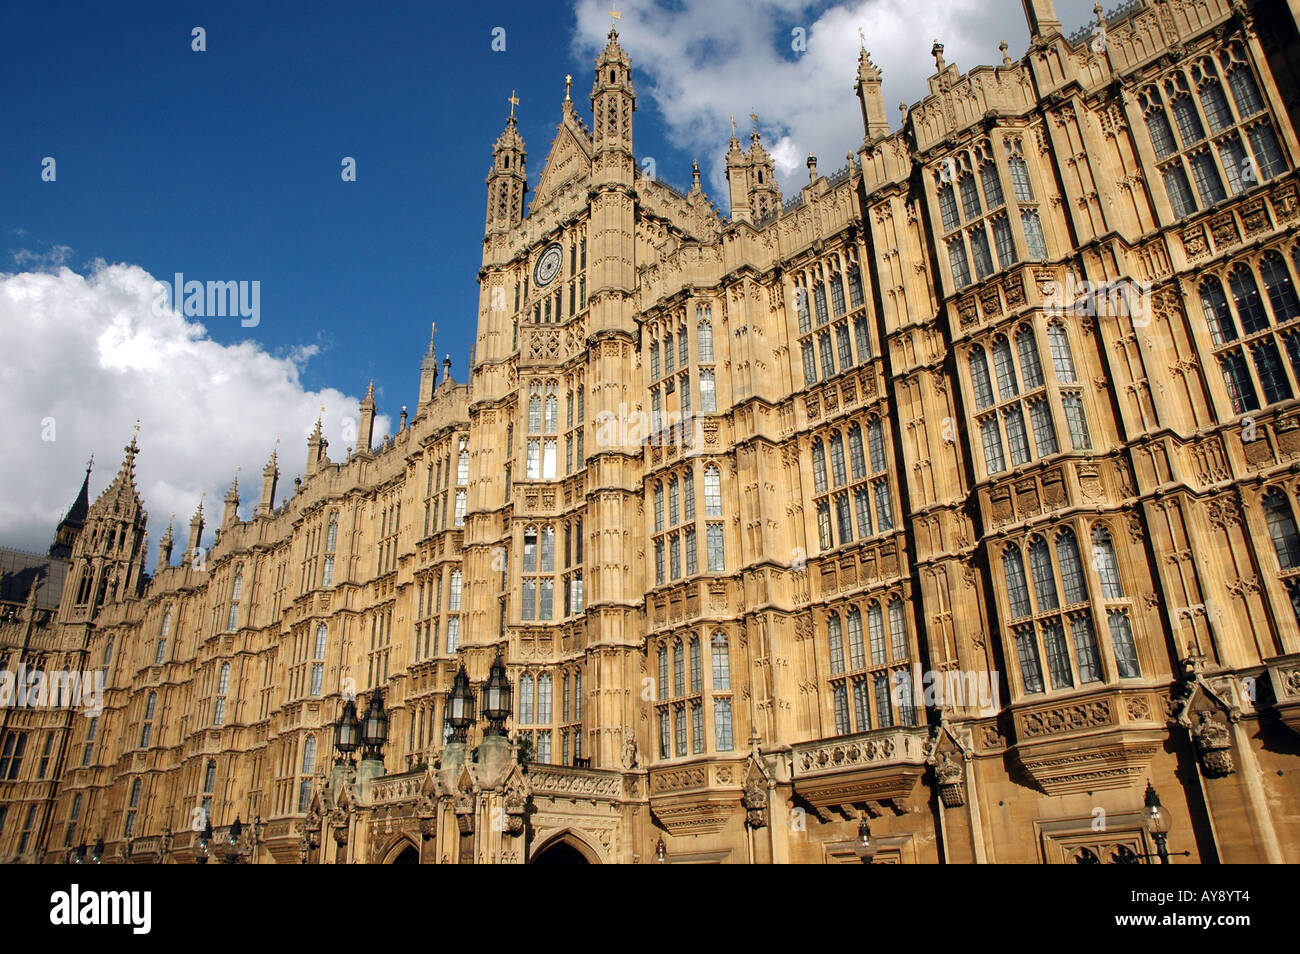 Palace of Westminster also called Houses of Parliament or Westminster Palace in London, UK - Stock Image